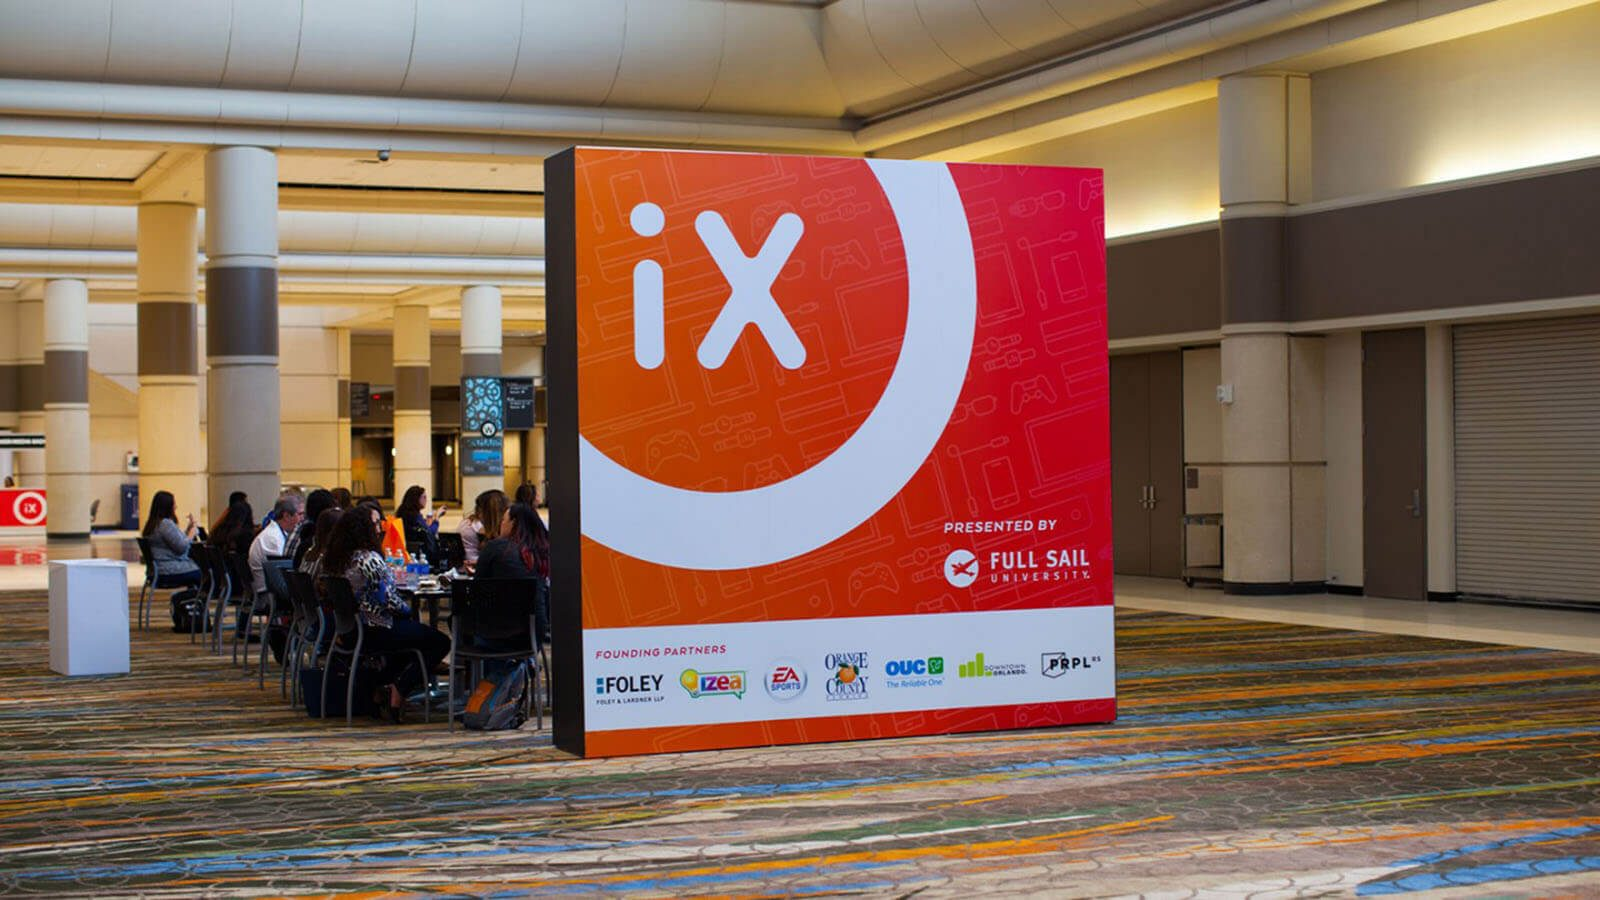 OrlandoiX Brings Technological Leaders and Innovators to Central Florida - Hero image